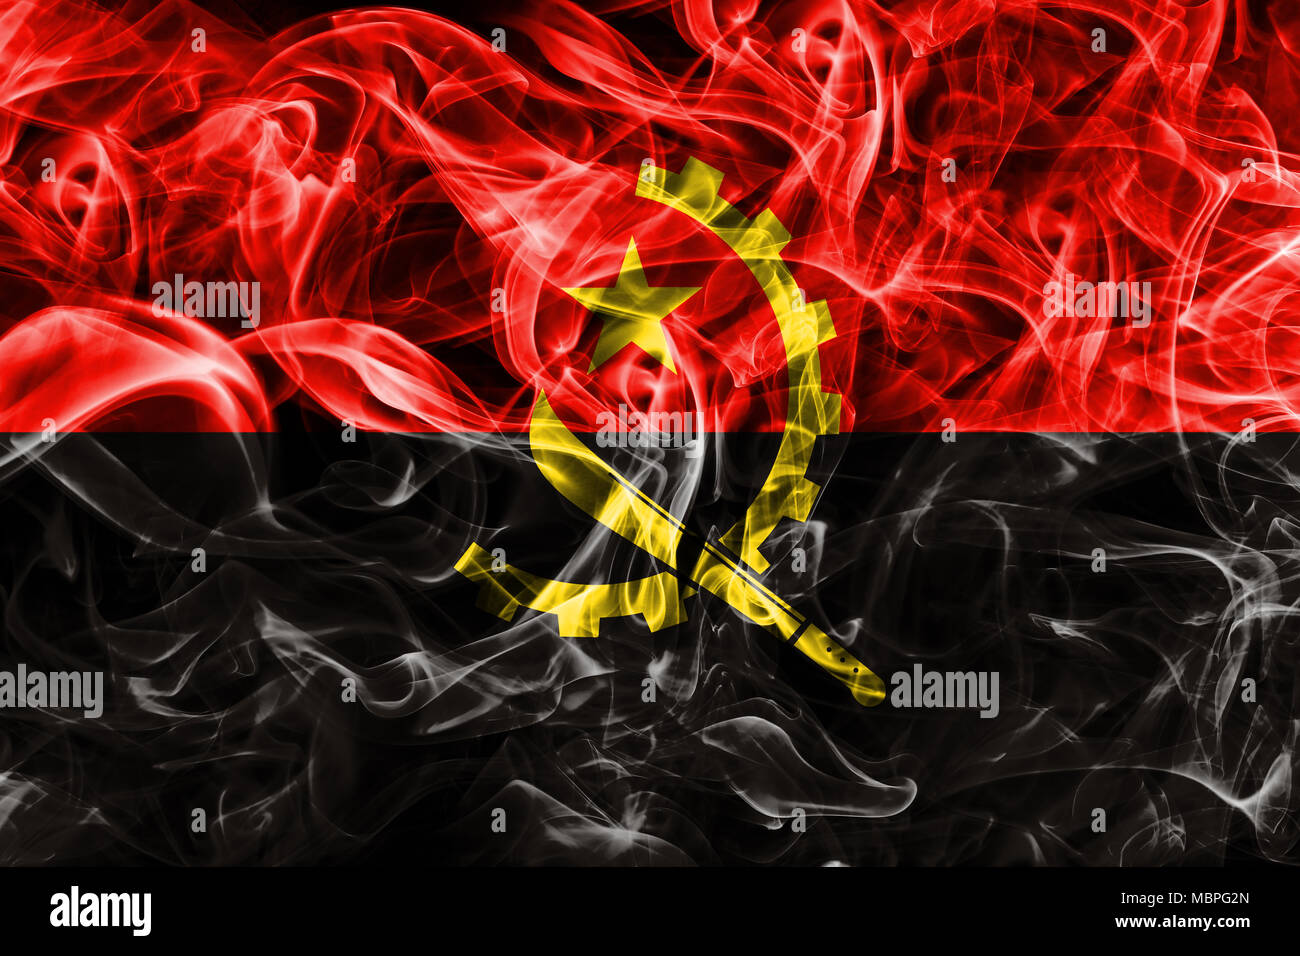 Angola smoke flag - Stock Image